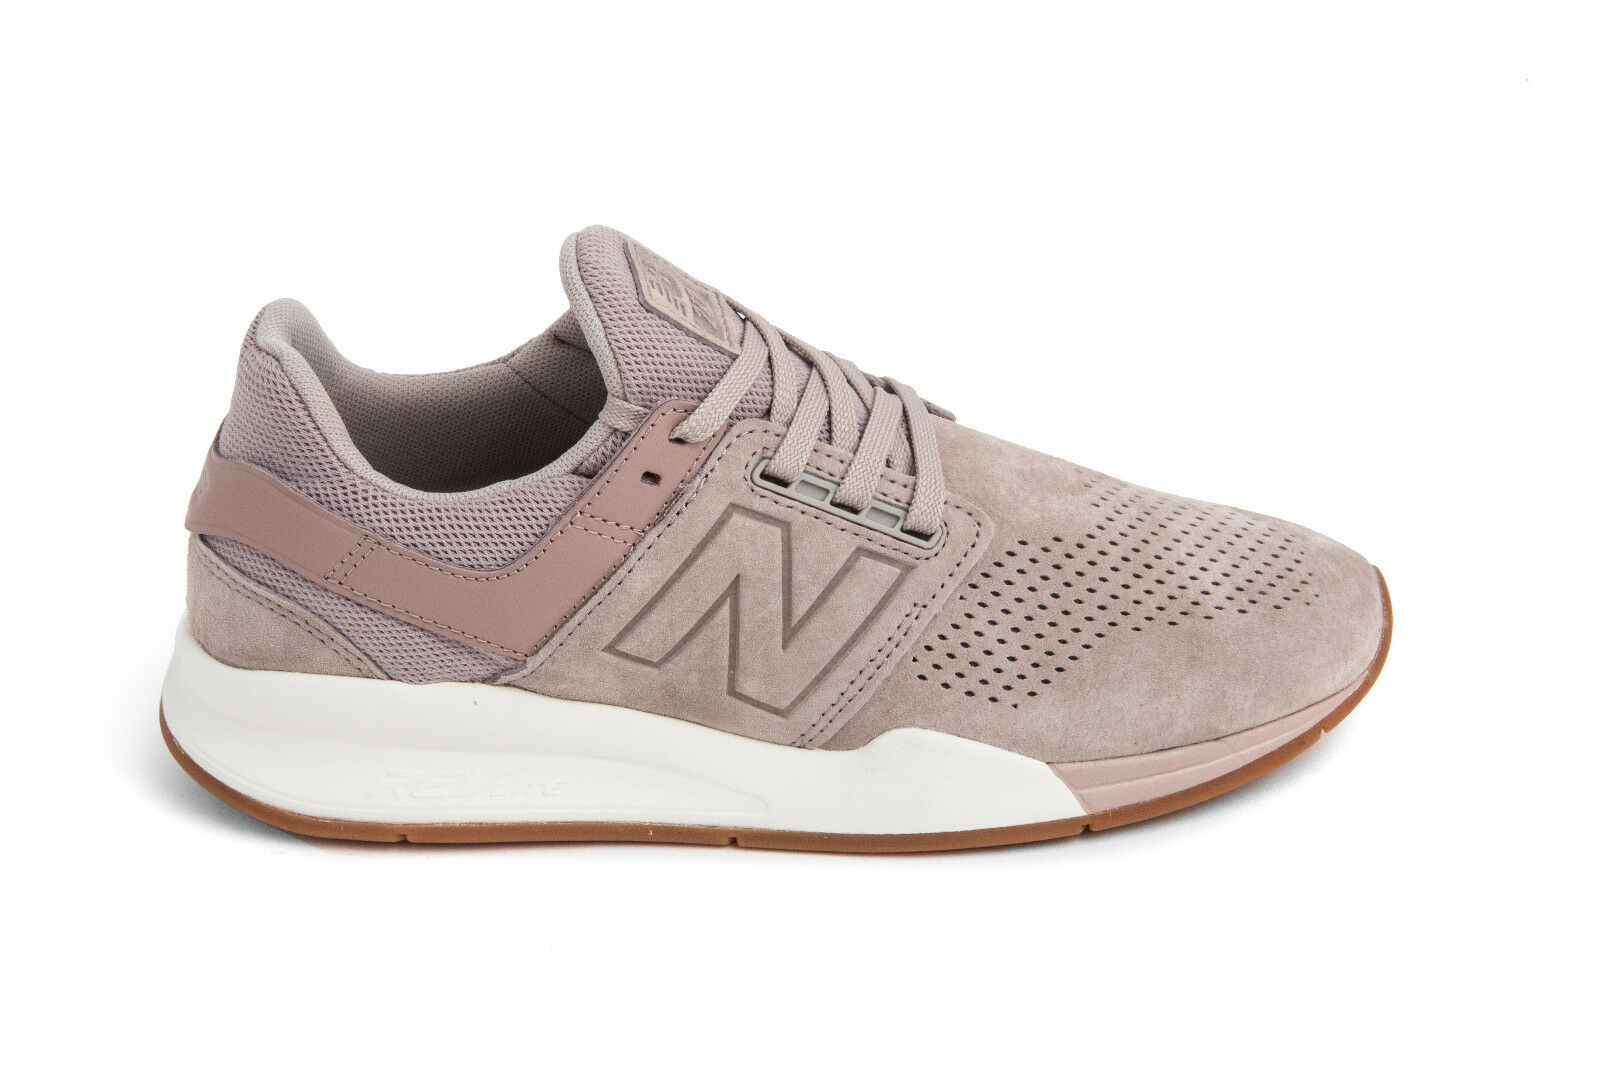 New Balance 247 Luxe Leather in brown MS247LA BNIB Free Shipping